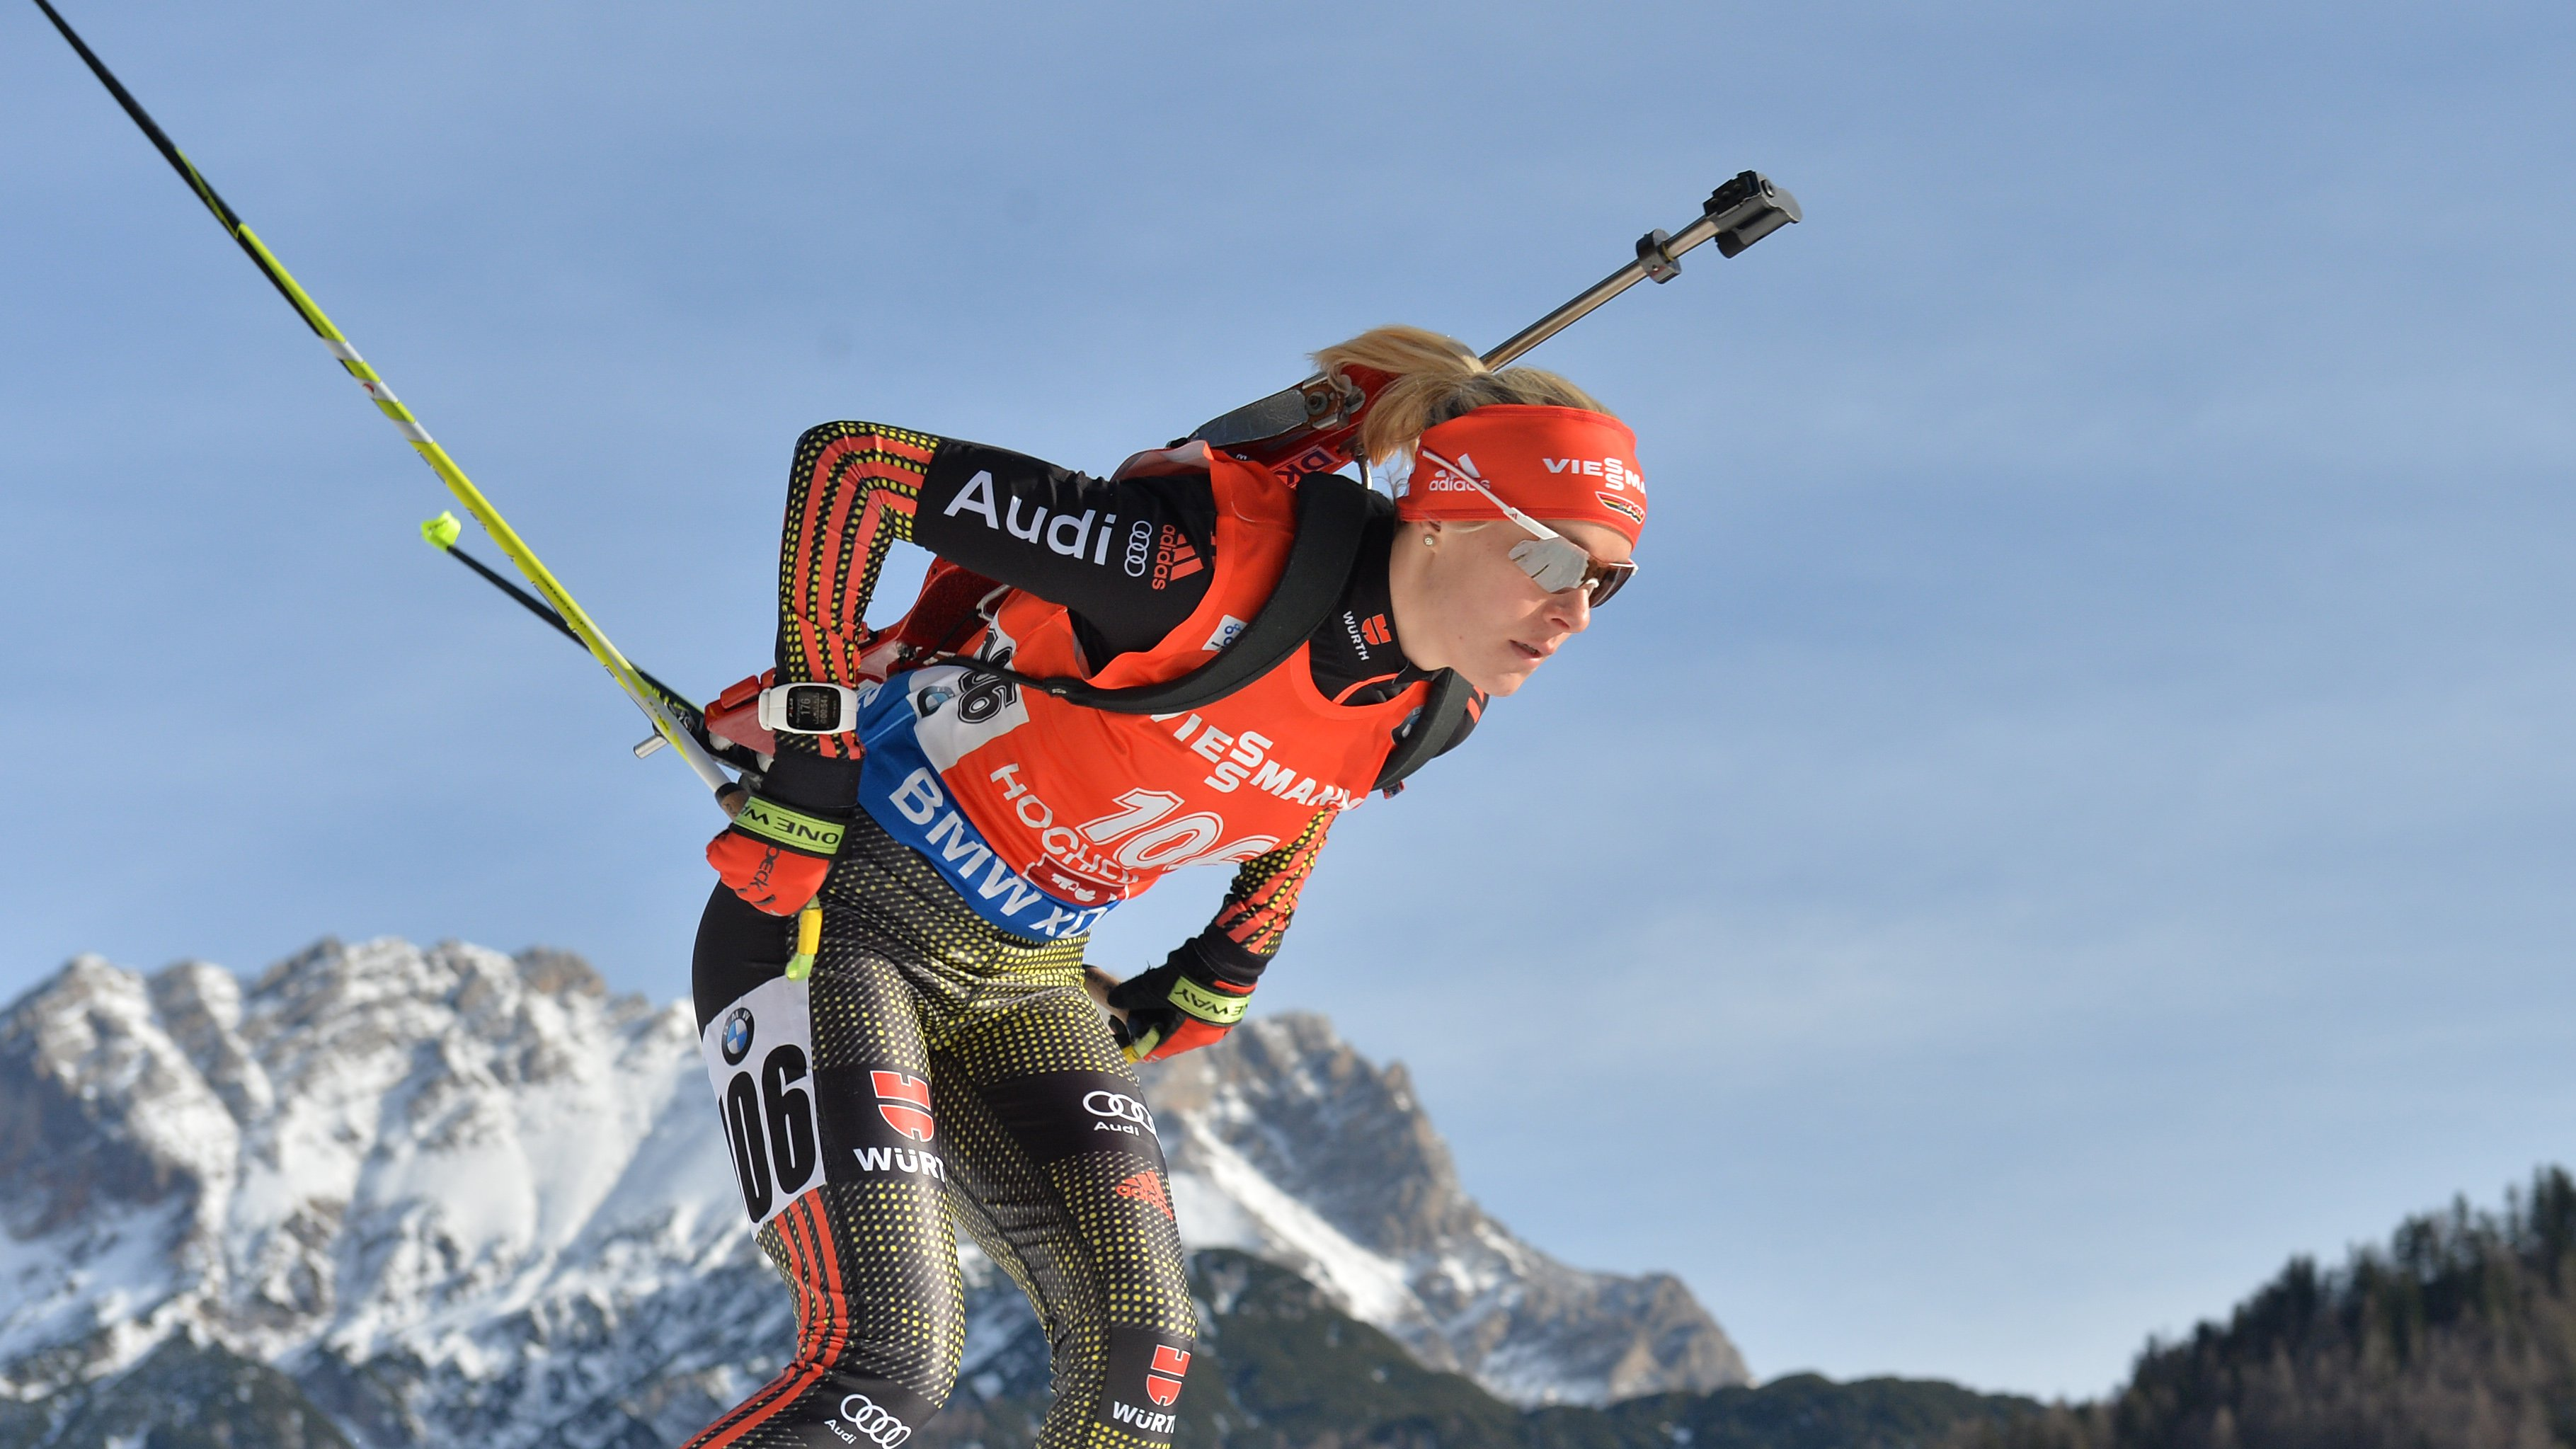 austria_biathlon_world_cup_-dd6b46121f87_r471.jpeg